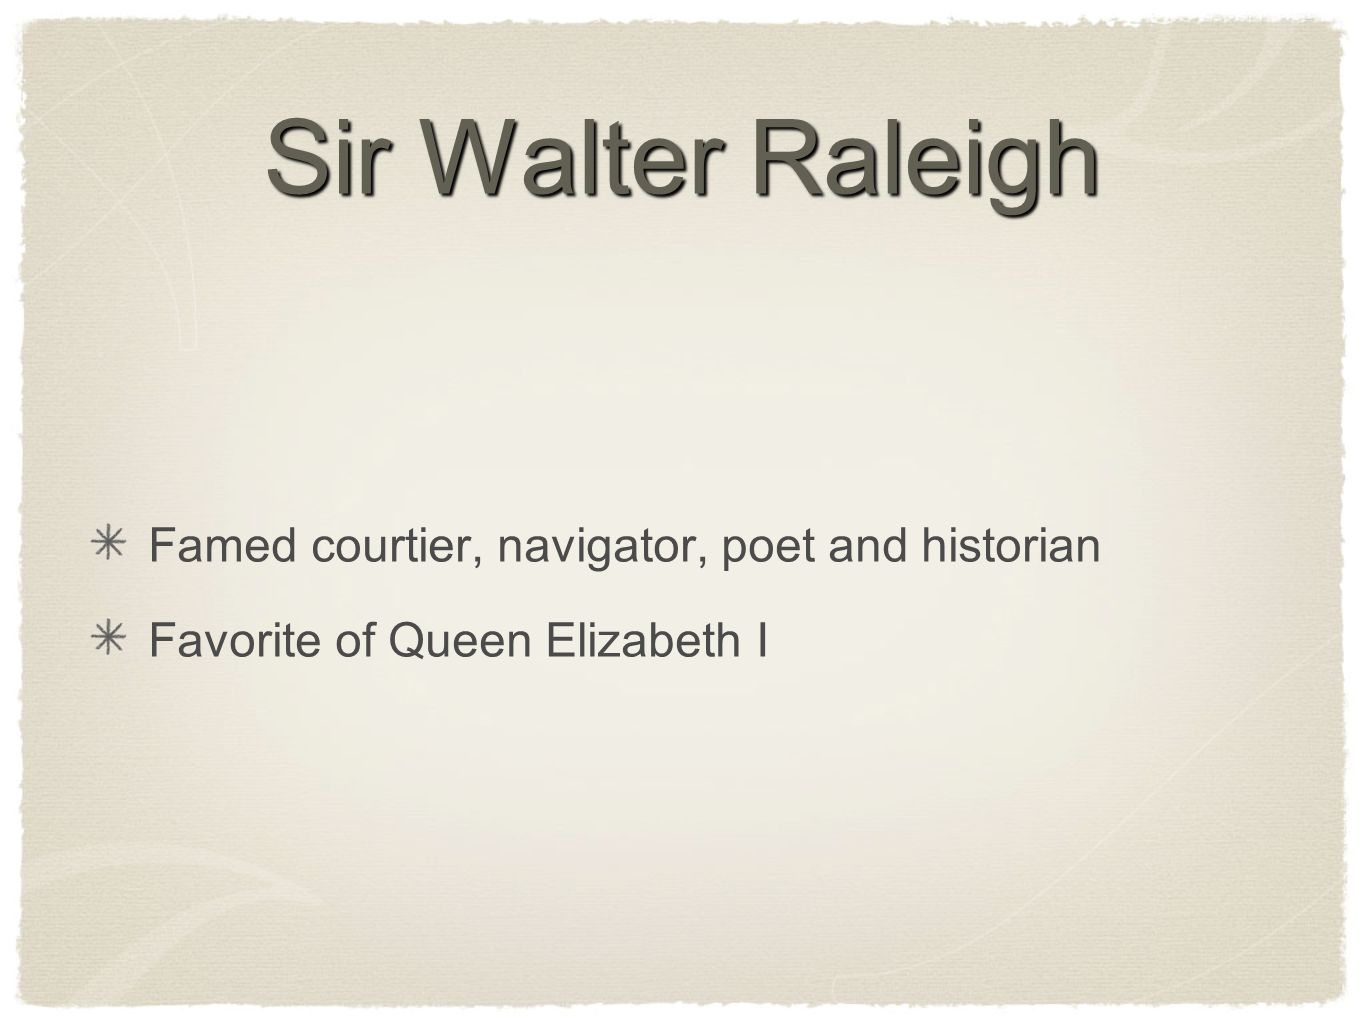 Sir Walter Raleigh Famed courtier, navigator, poet and historian